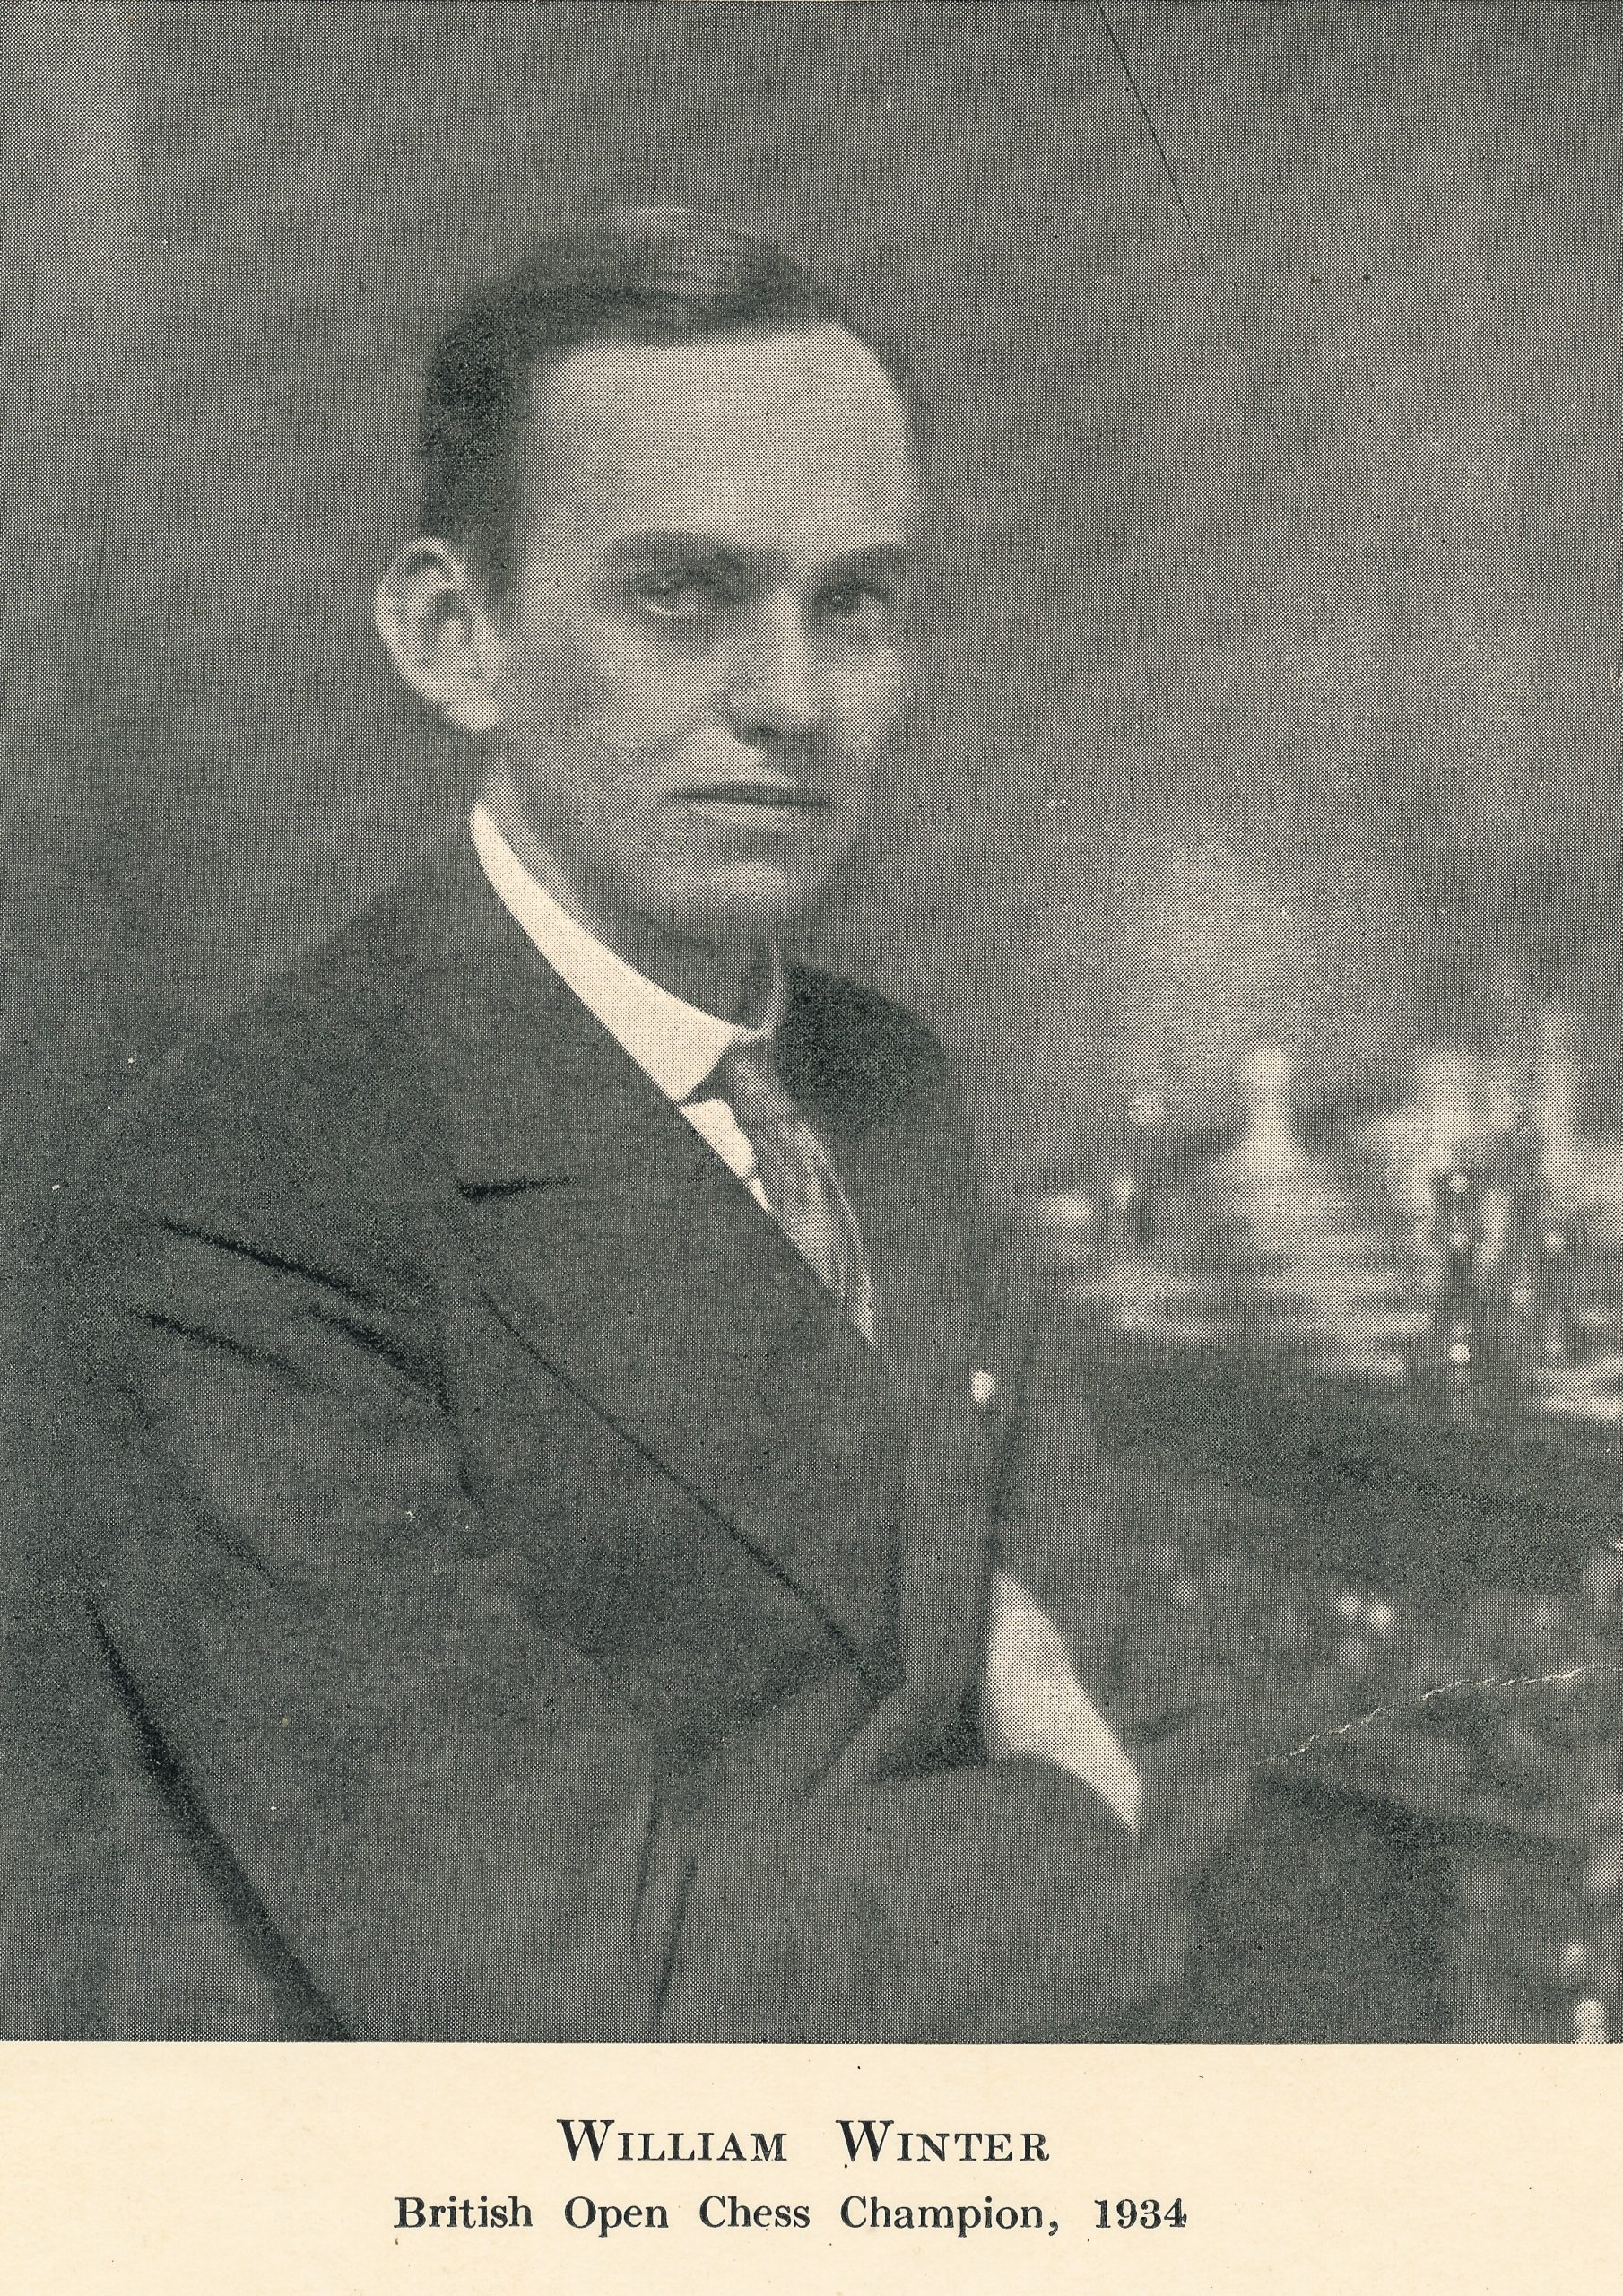 William Winter, British Open Chess Champion, 1934. The verso frontispiece of Chess for Match Players, William Winter, London, Lawrence & Wishart, 1st edition. 1936